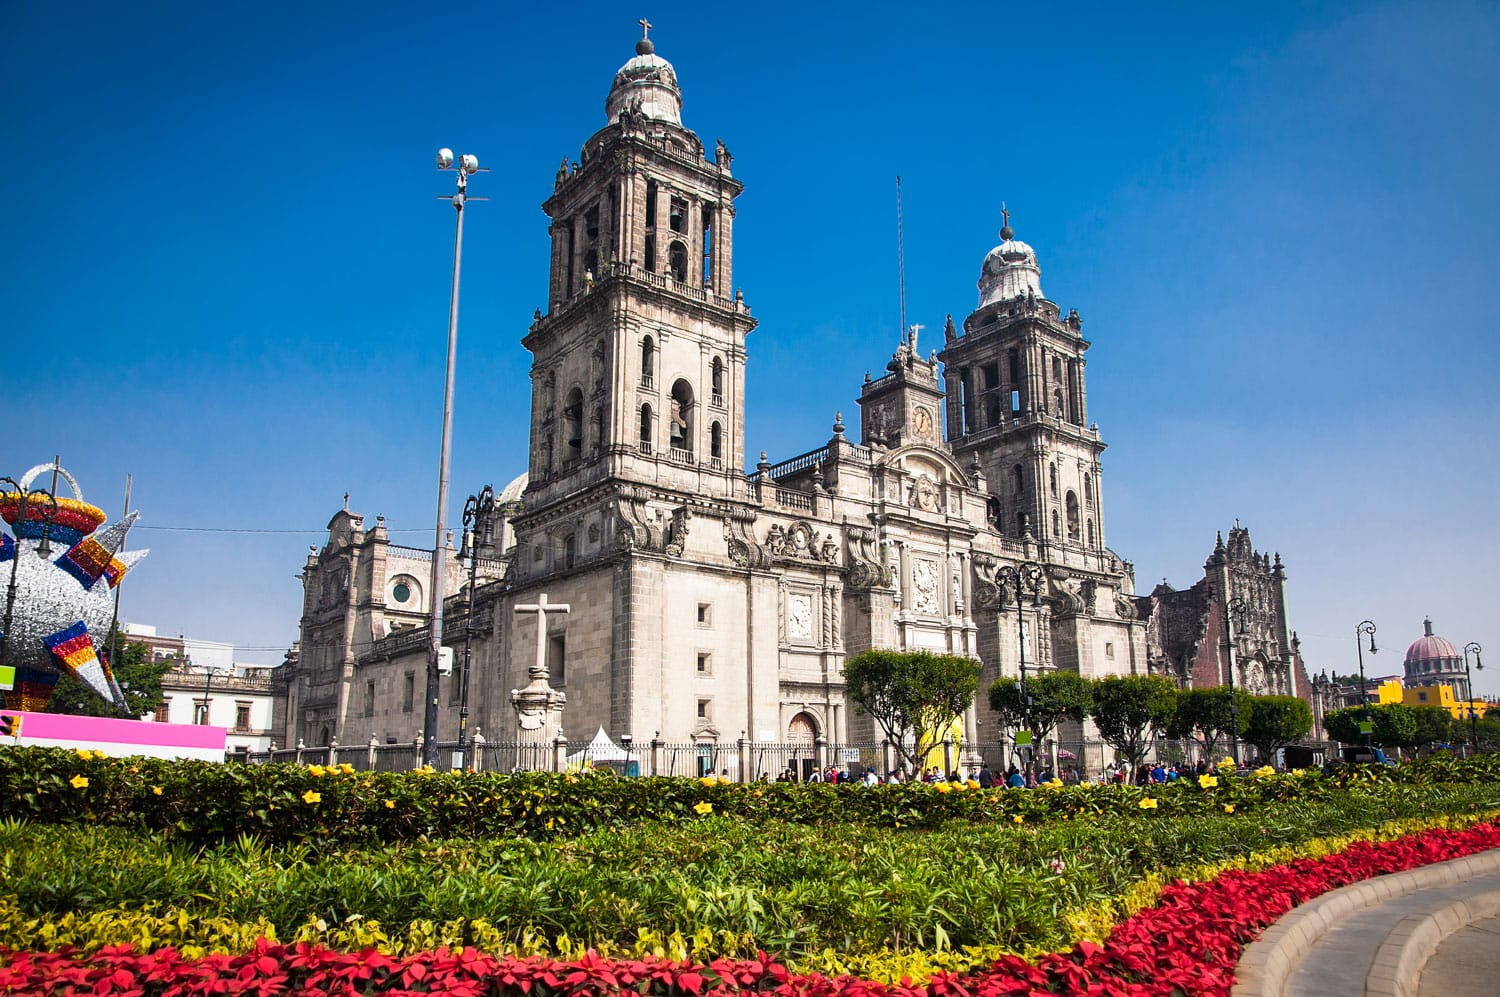 Exterior Metropolitan Cathedral in Mexico City, Latin America.